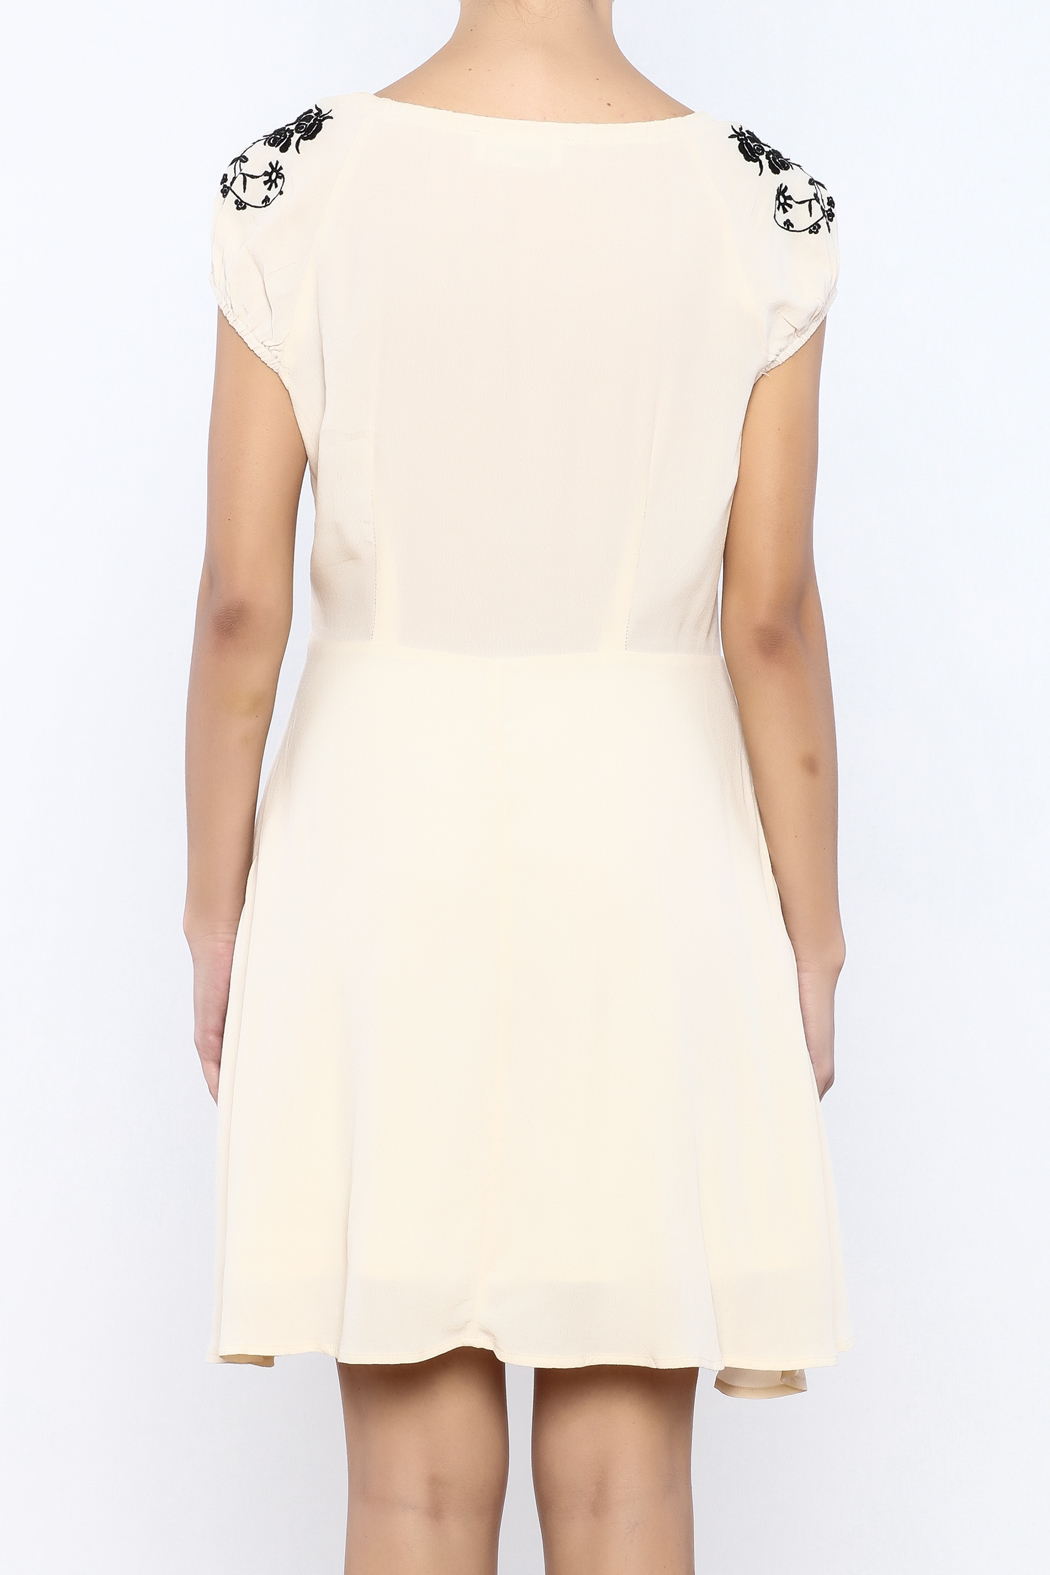 Bacio Beige Embroidered Dress - Back Cropped Image